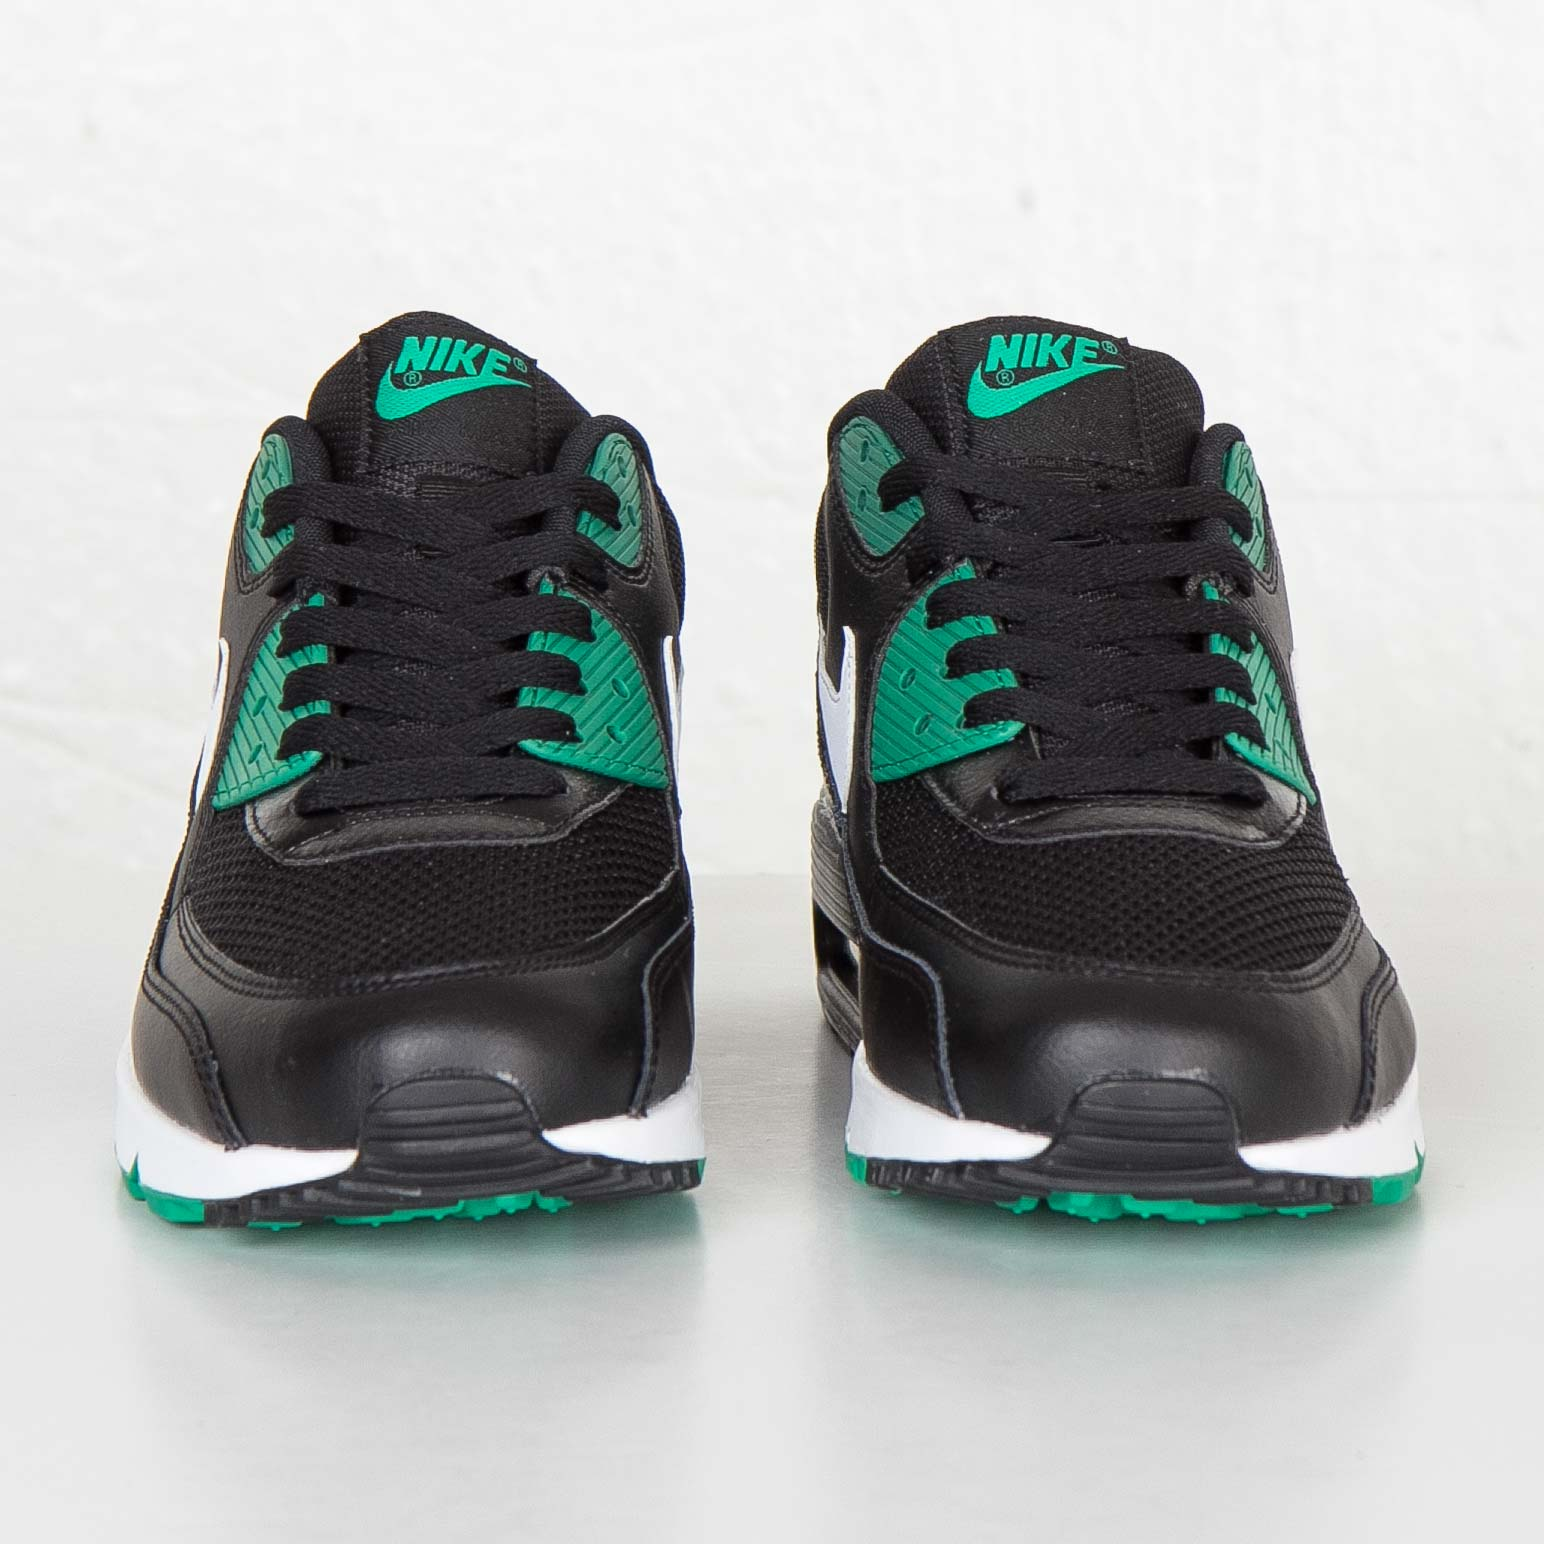 1d13058a01c Nike Air Max 90 Essential - 537384-054 - Sneakersnstuff